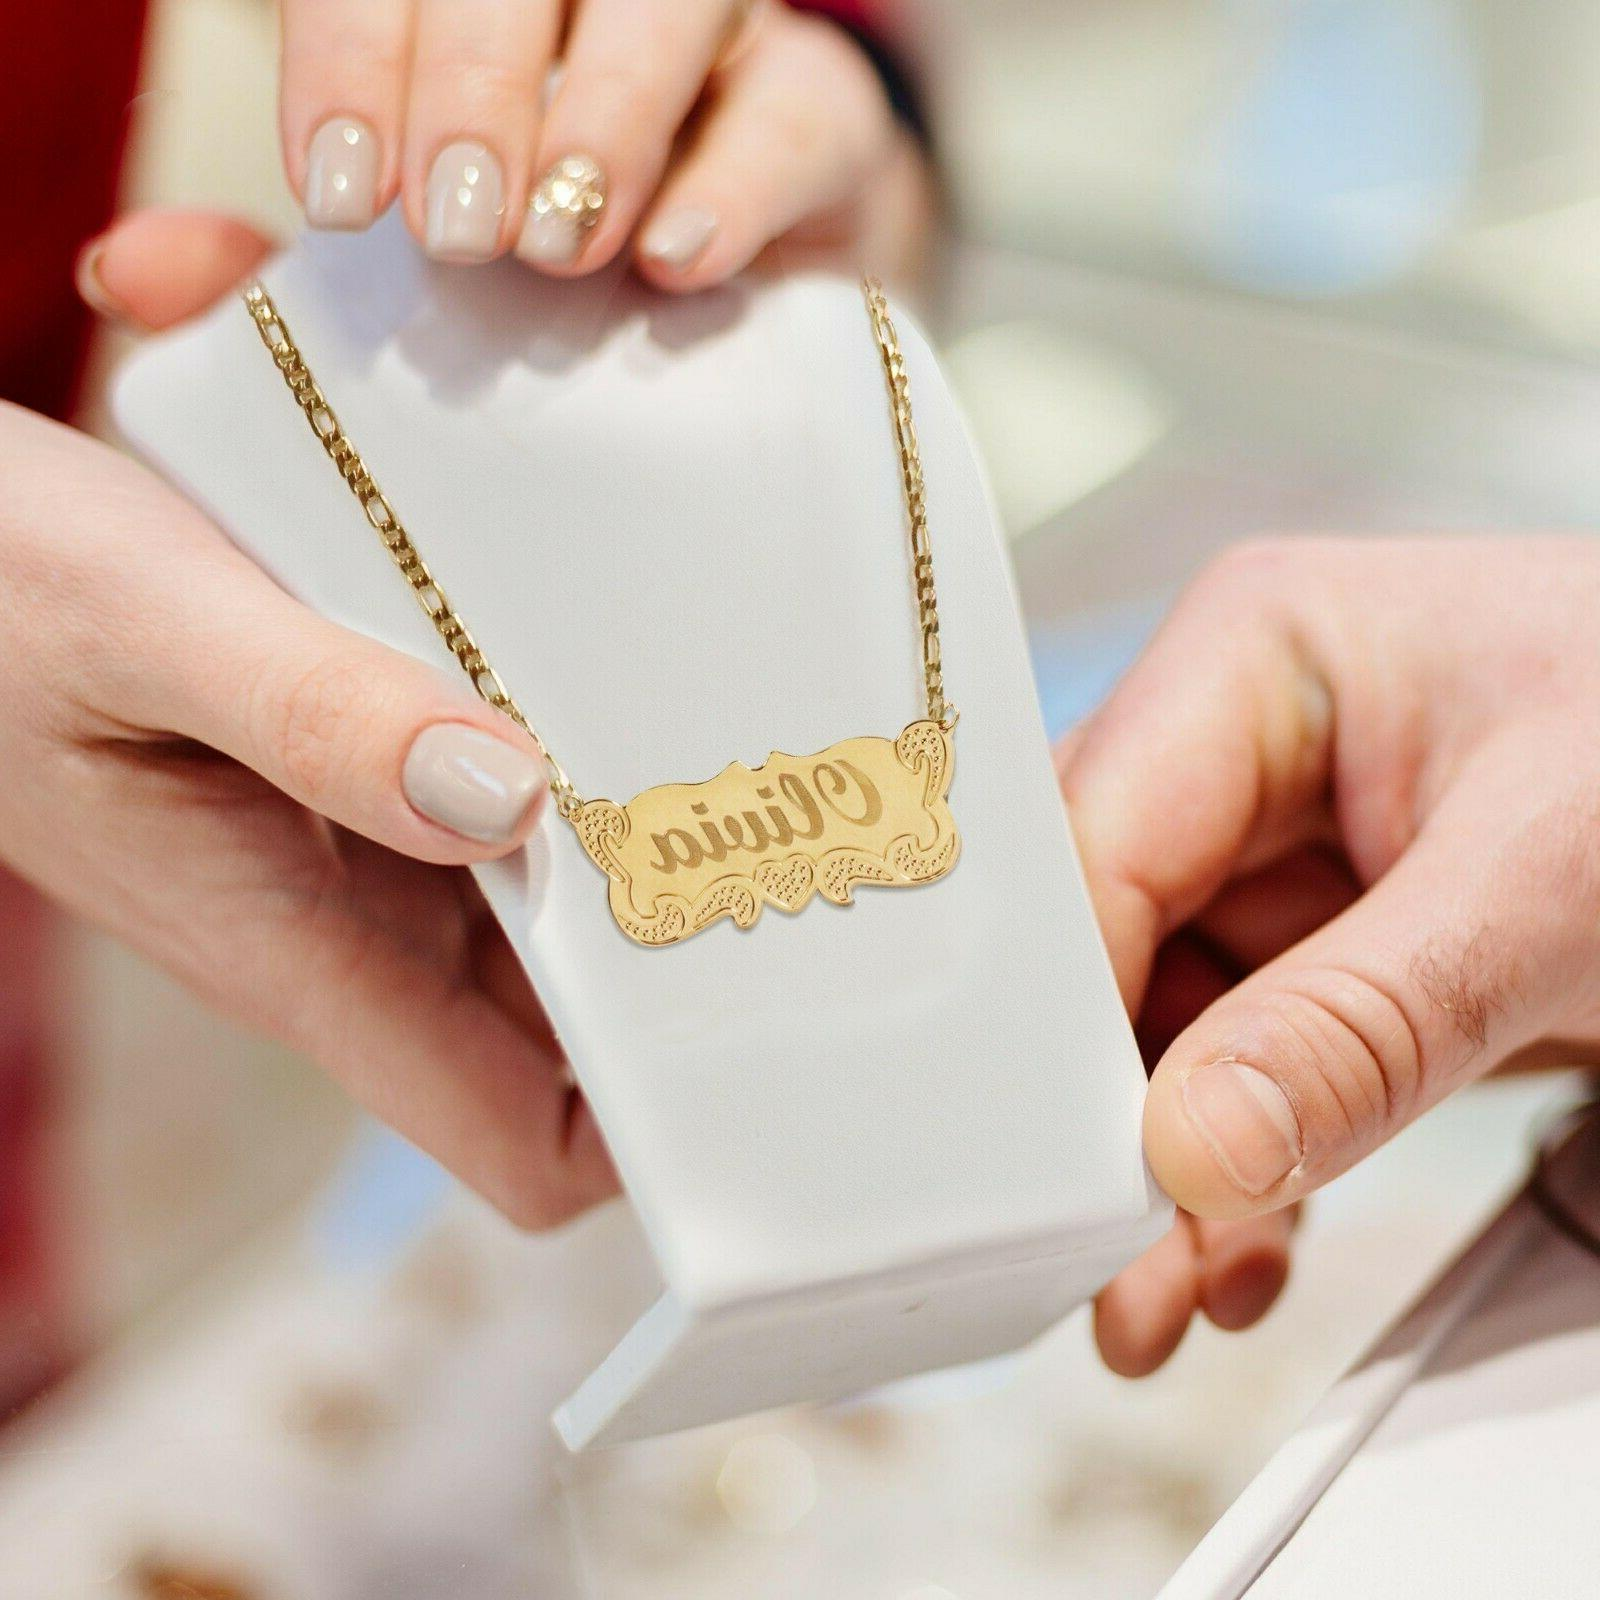 tina and co personalized 14k gold plated